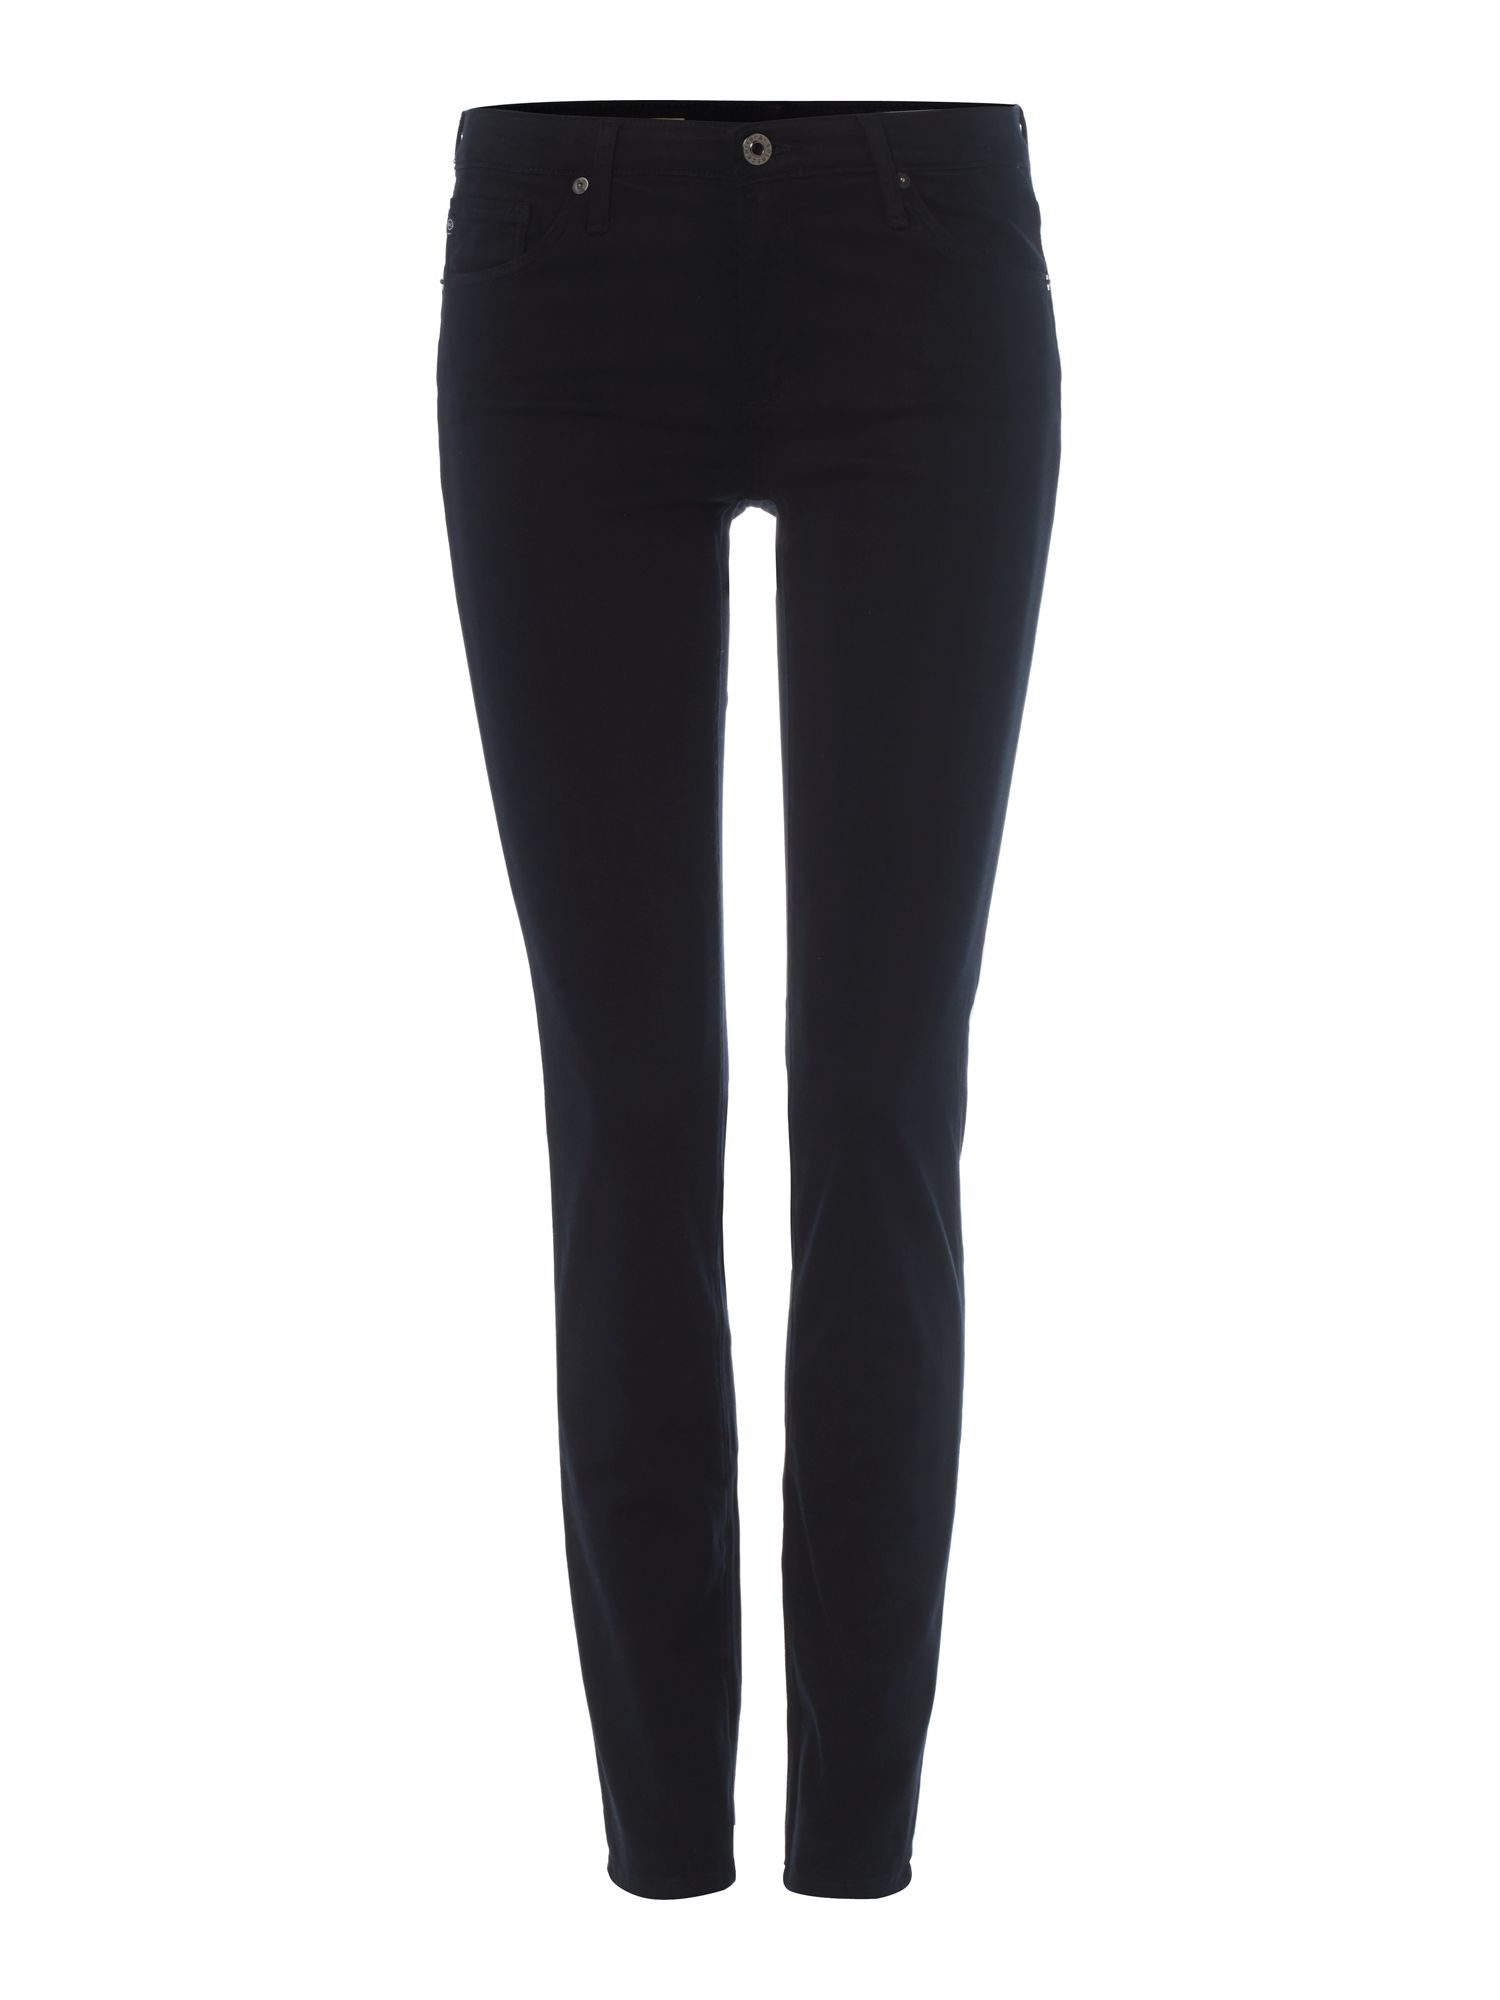 The Stilt cigarette leg jeans in Dark Night